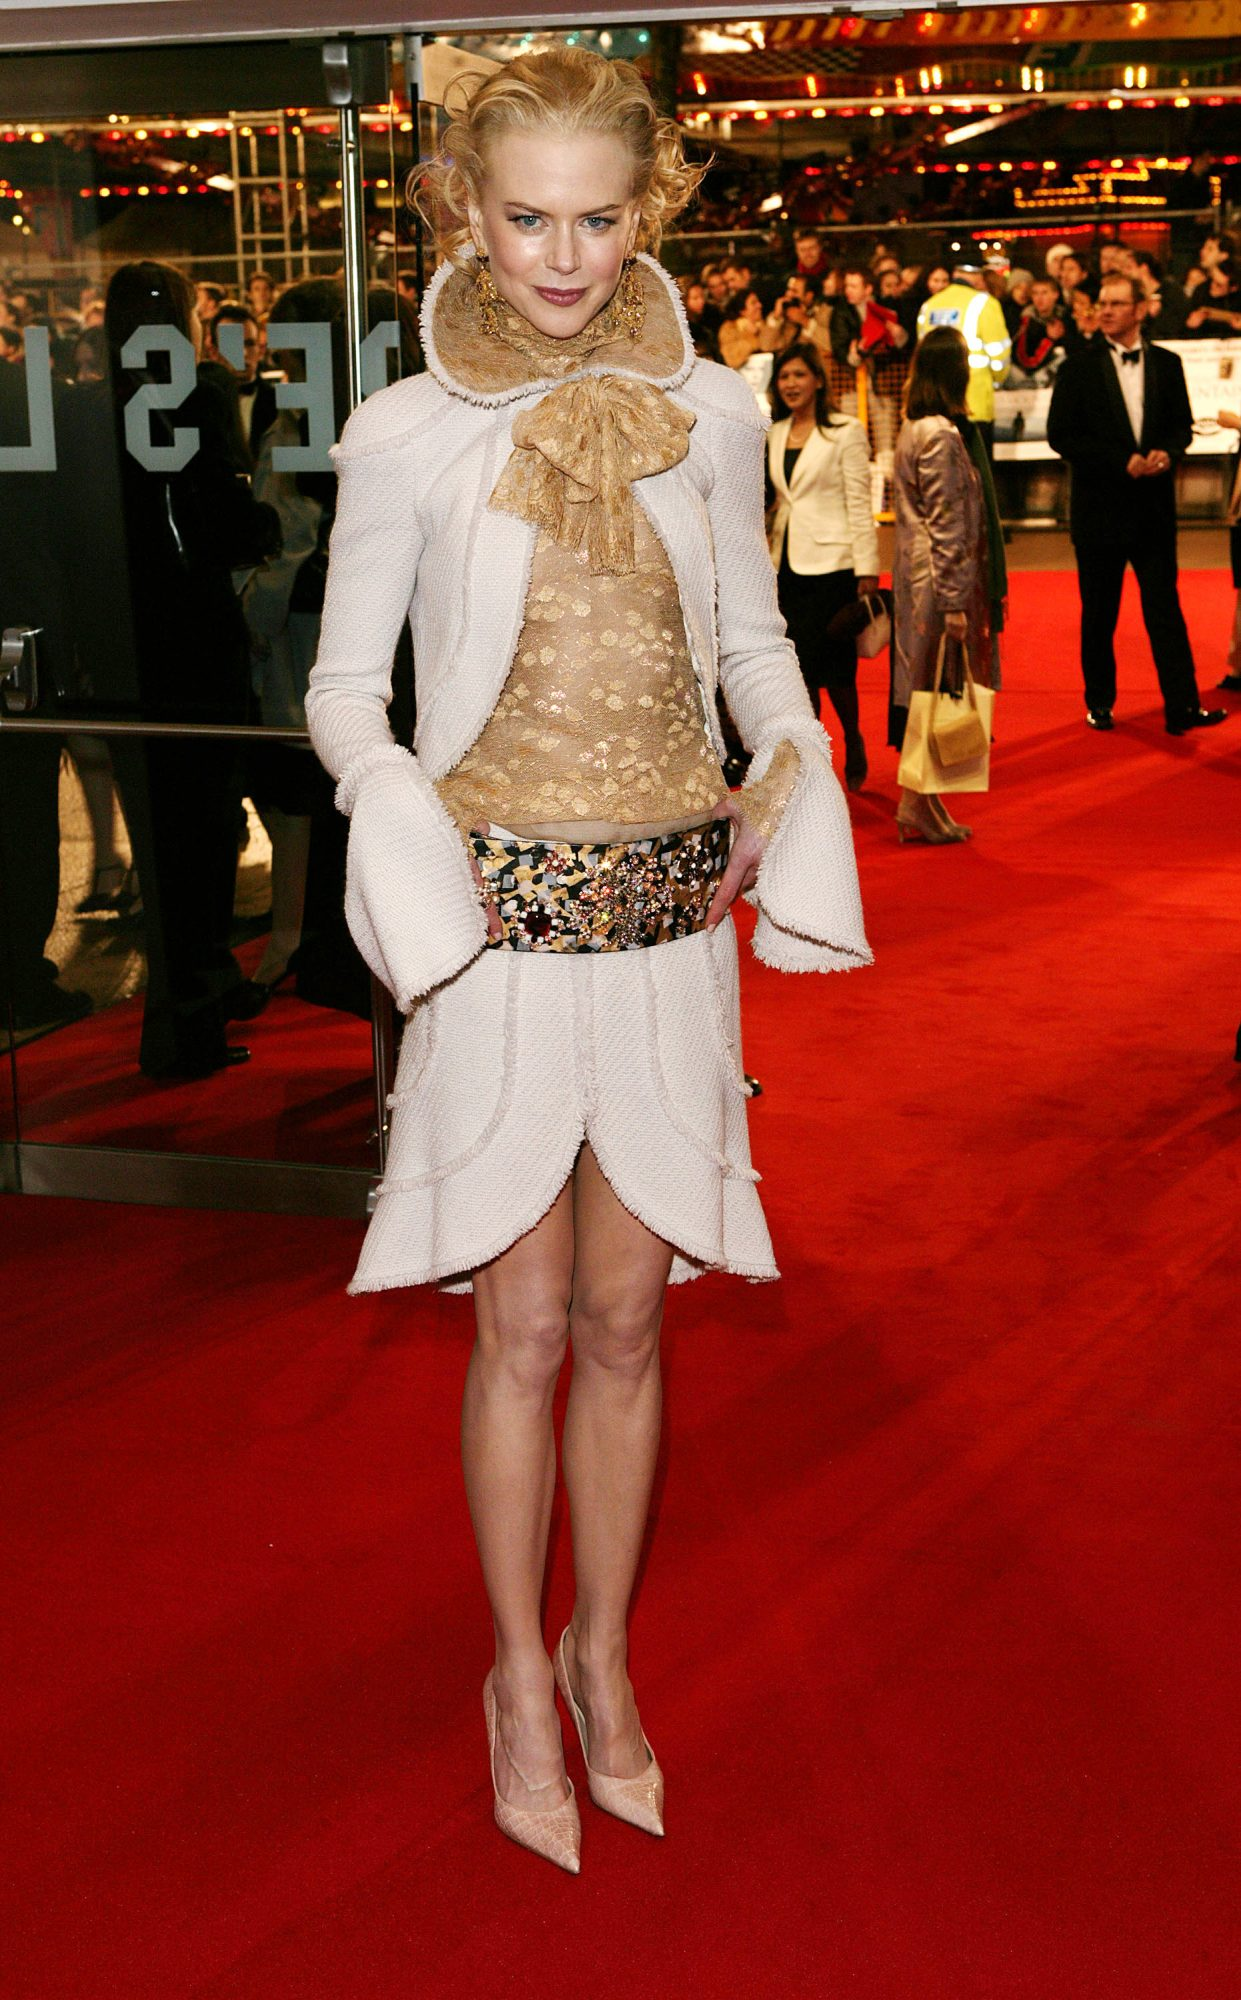 Nicole Kidman at the UK Royal Charity Premiere of Cold Mountain